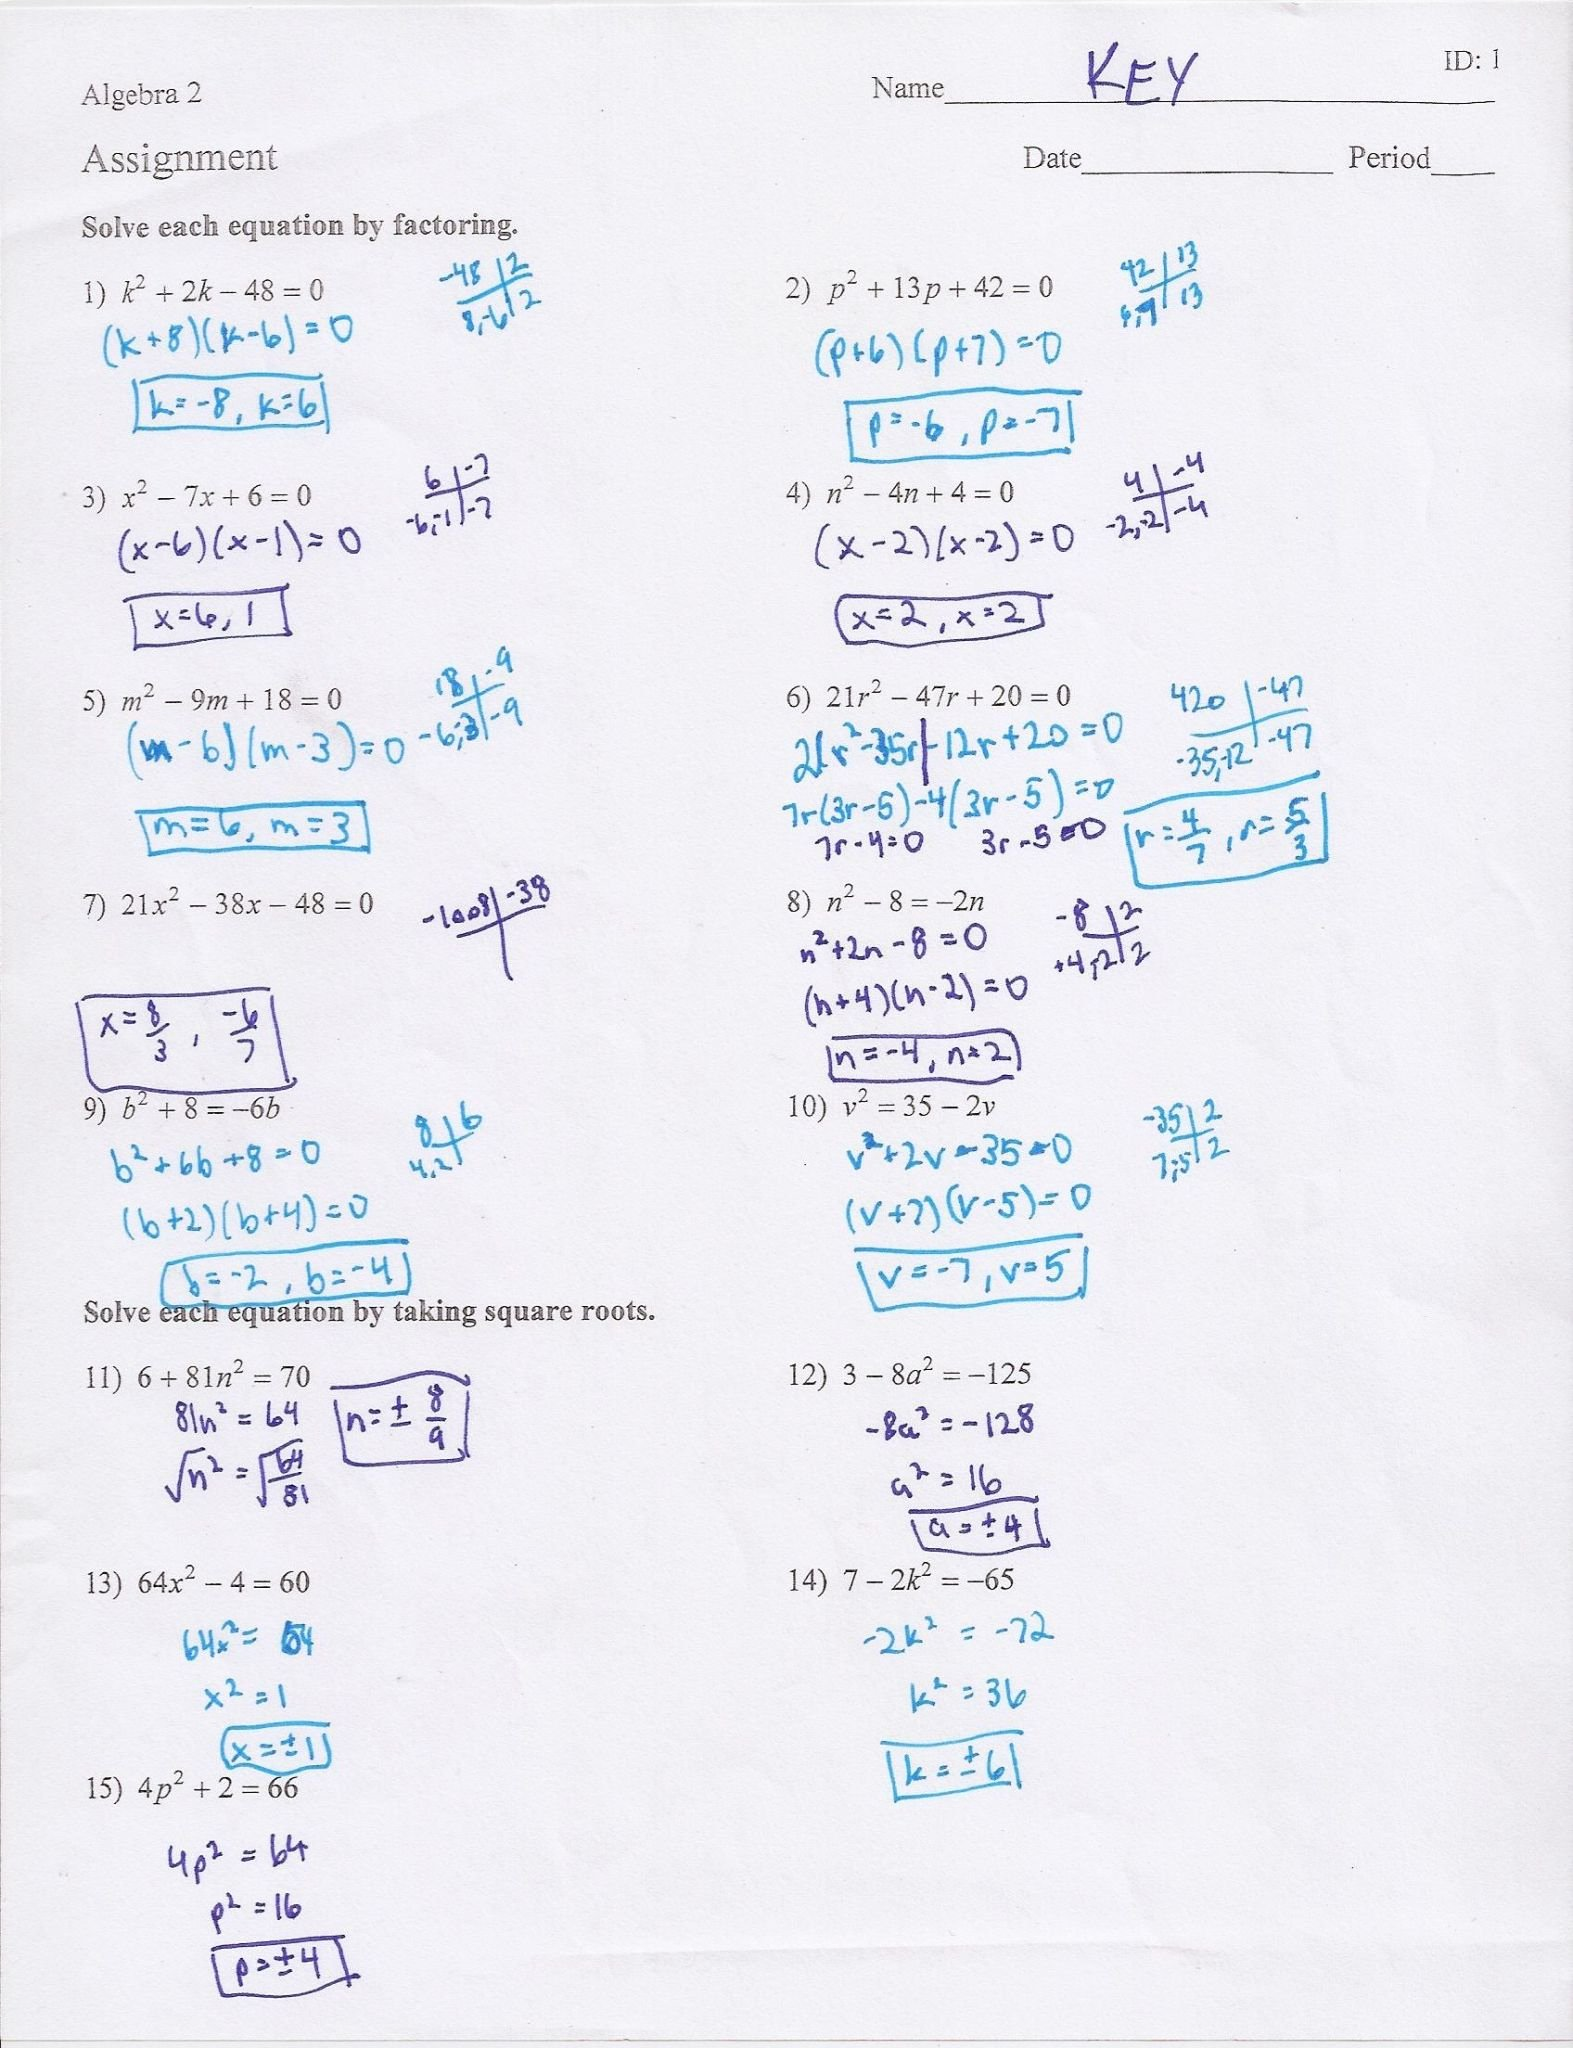 Quadratic Equation Worksheet with Answers Free Basic Quadratic Equations Worksheet